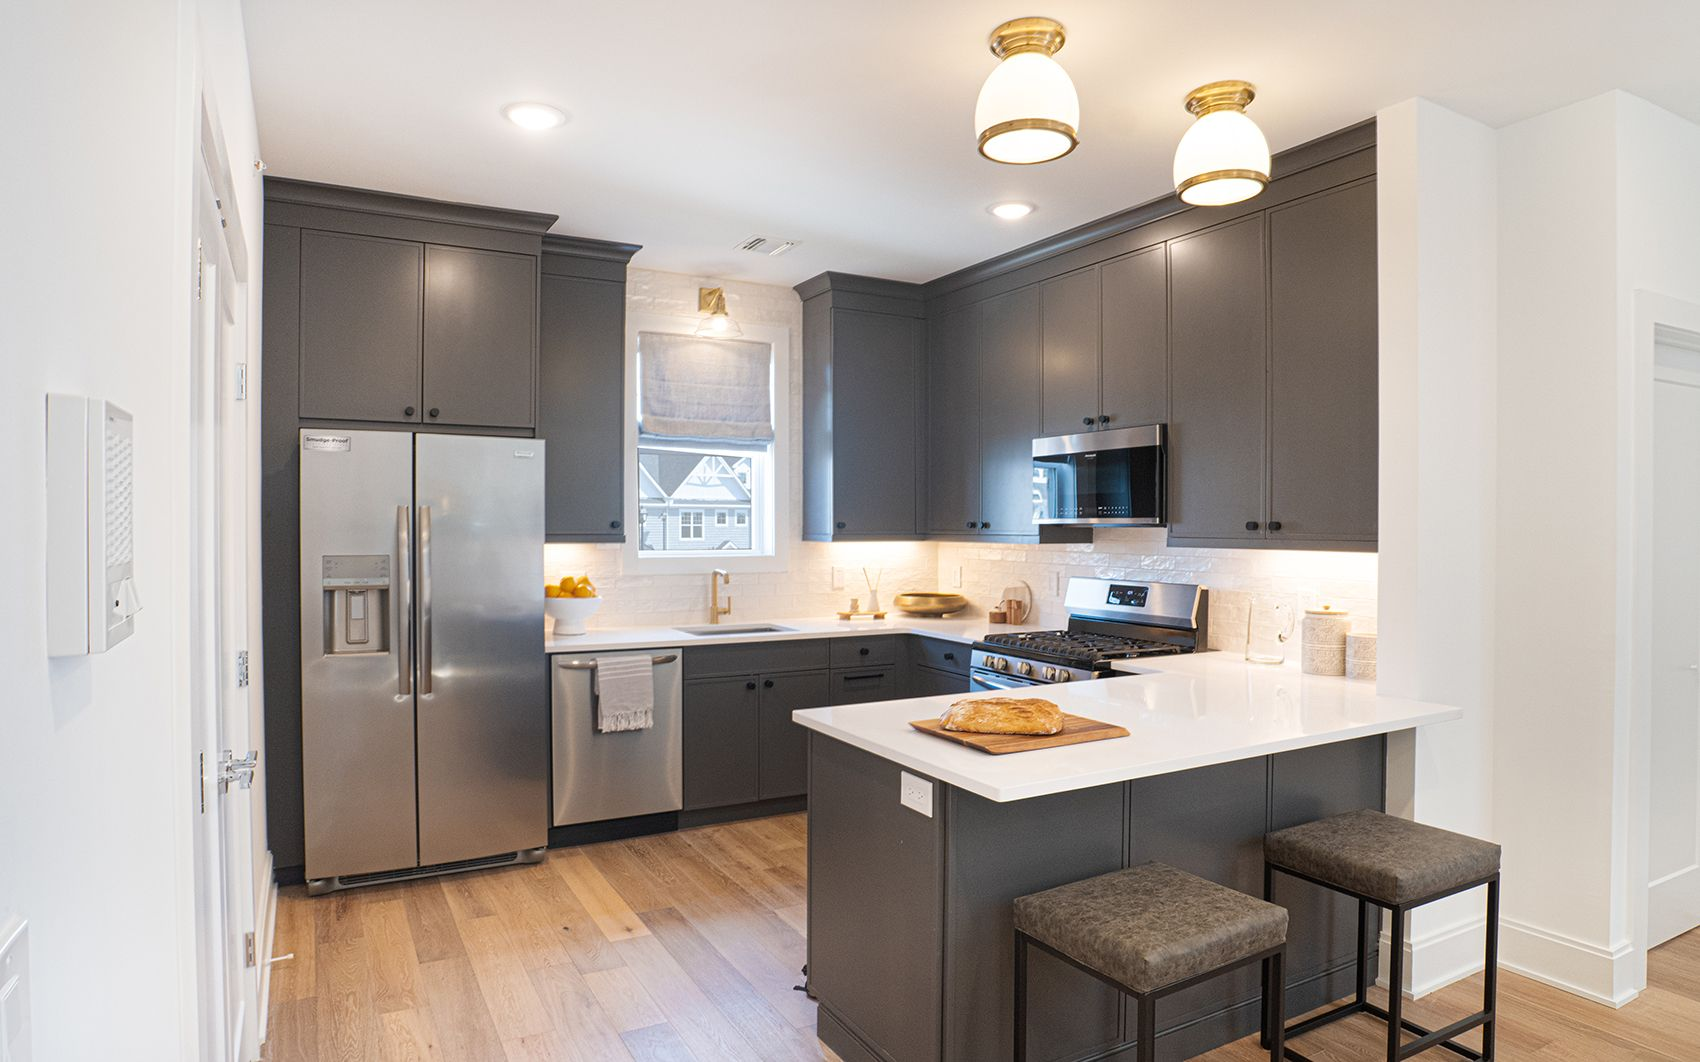 Kitchen featured in The Bergamot By Beechwood Homes in Nassau-Suffolk, NY